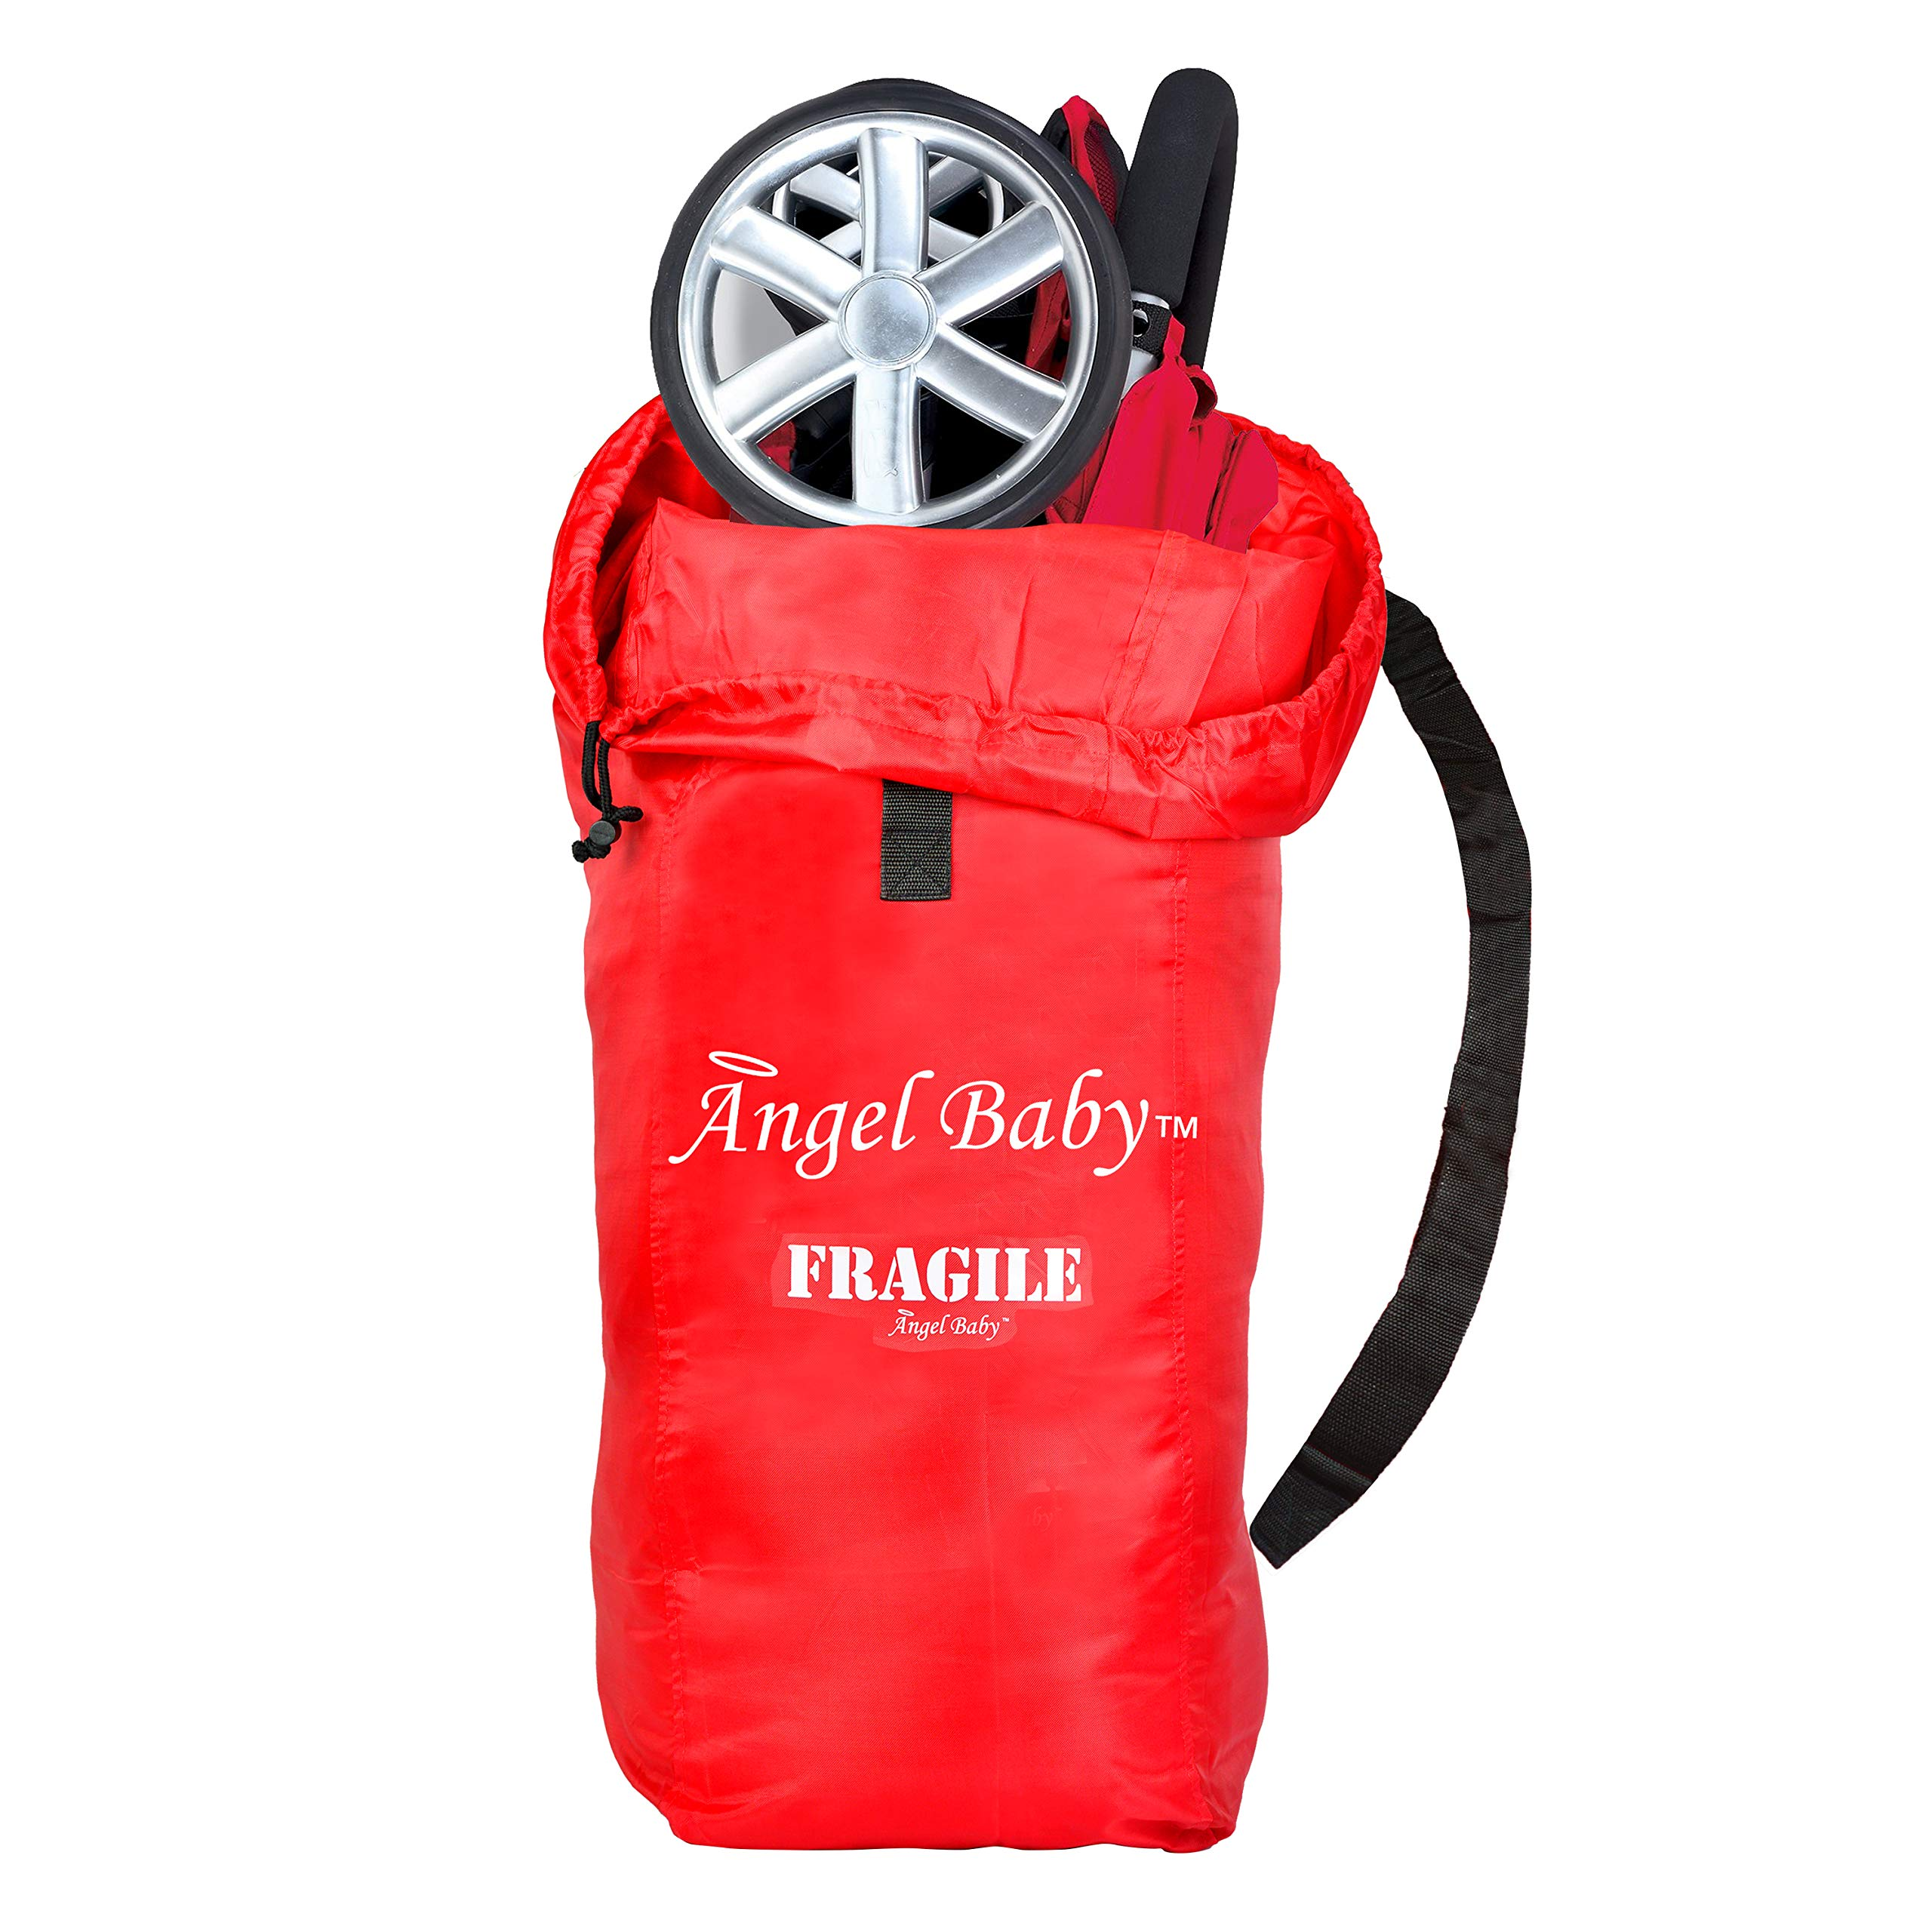 Angel Baby Stroller Travel Bag for Airplane: Stroller Gate Check Bag Cover, Red by Angel Baby (Image #1)